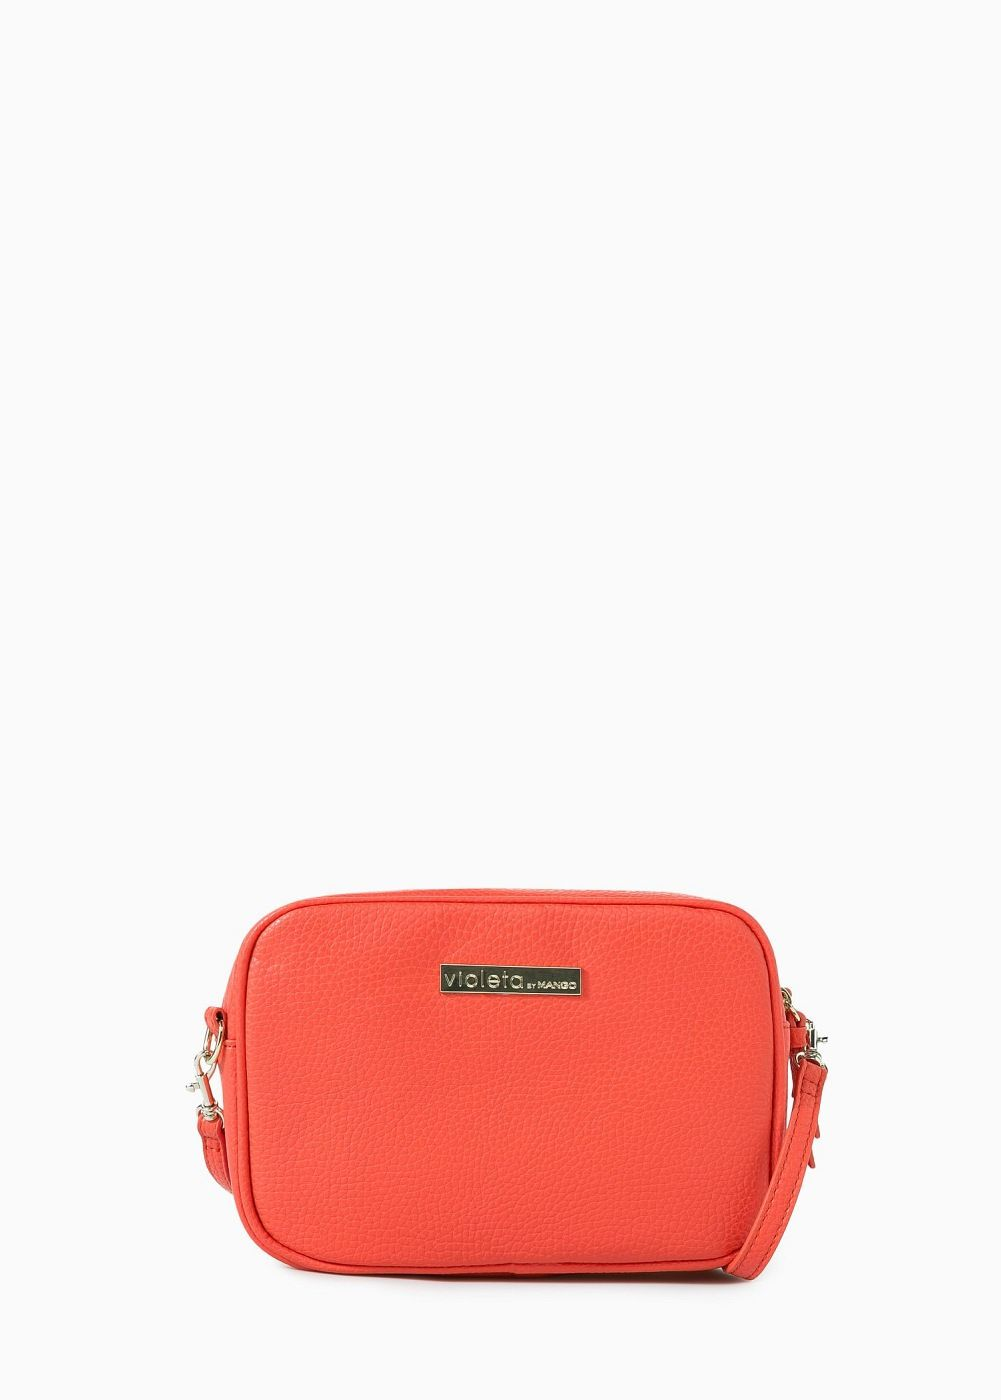 Cross-body pebbled bag